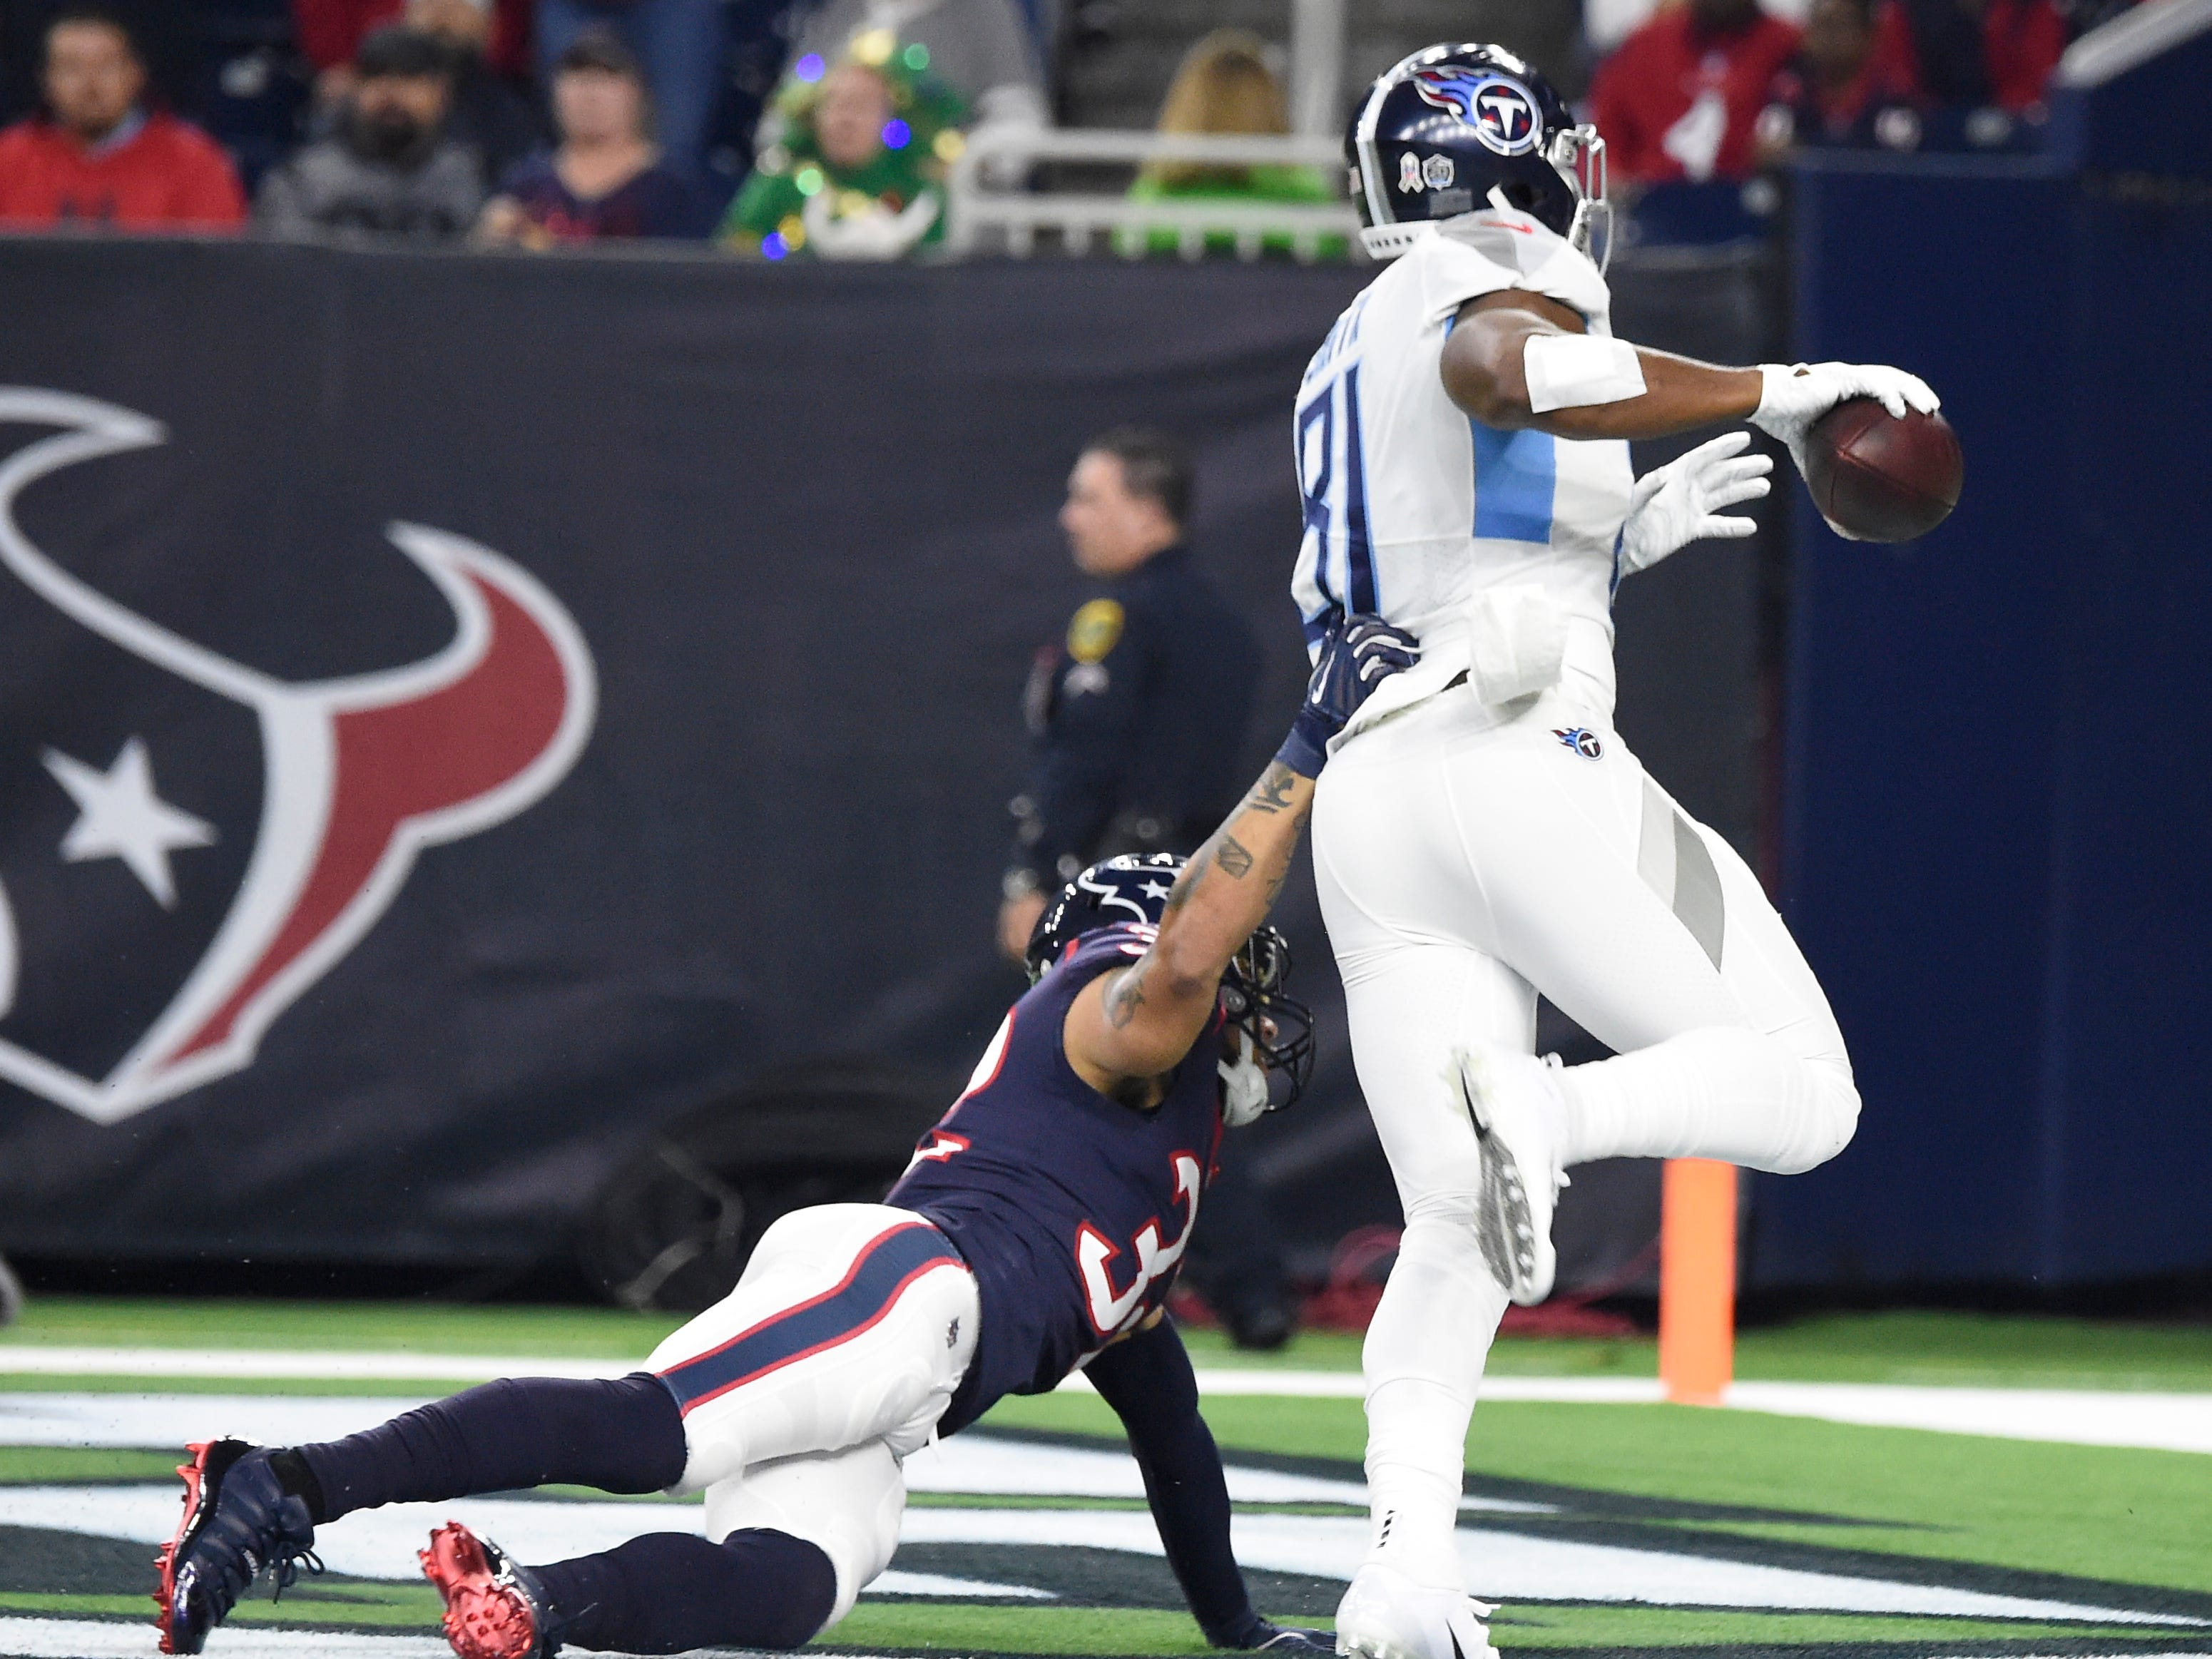 Titans tight end Jonnu Smith (81) pulls away from a Texans defender to score the team's first touchdown in the first quarter at NRG Stadium Monday, Nov. 26, 2018, in Houston, Texas.